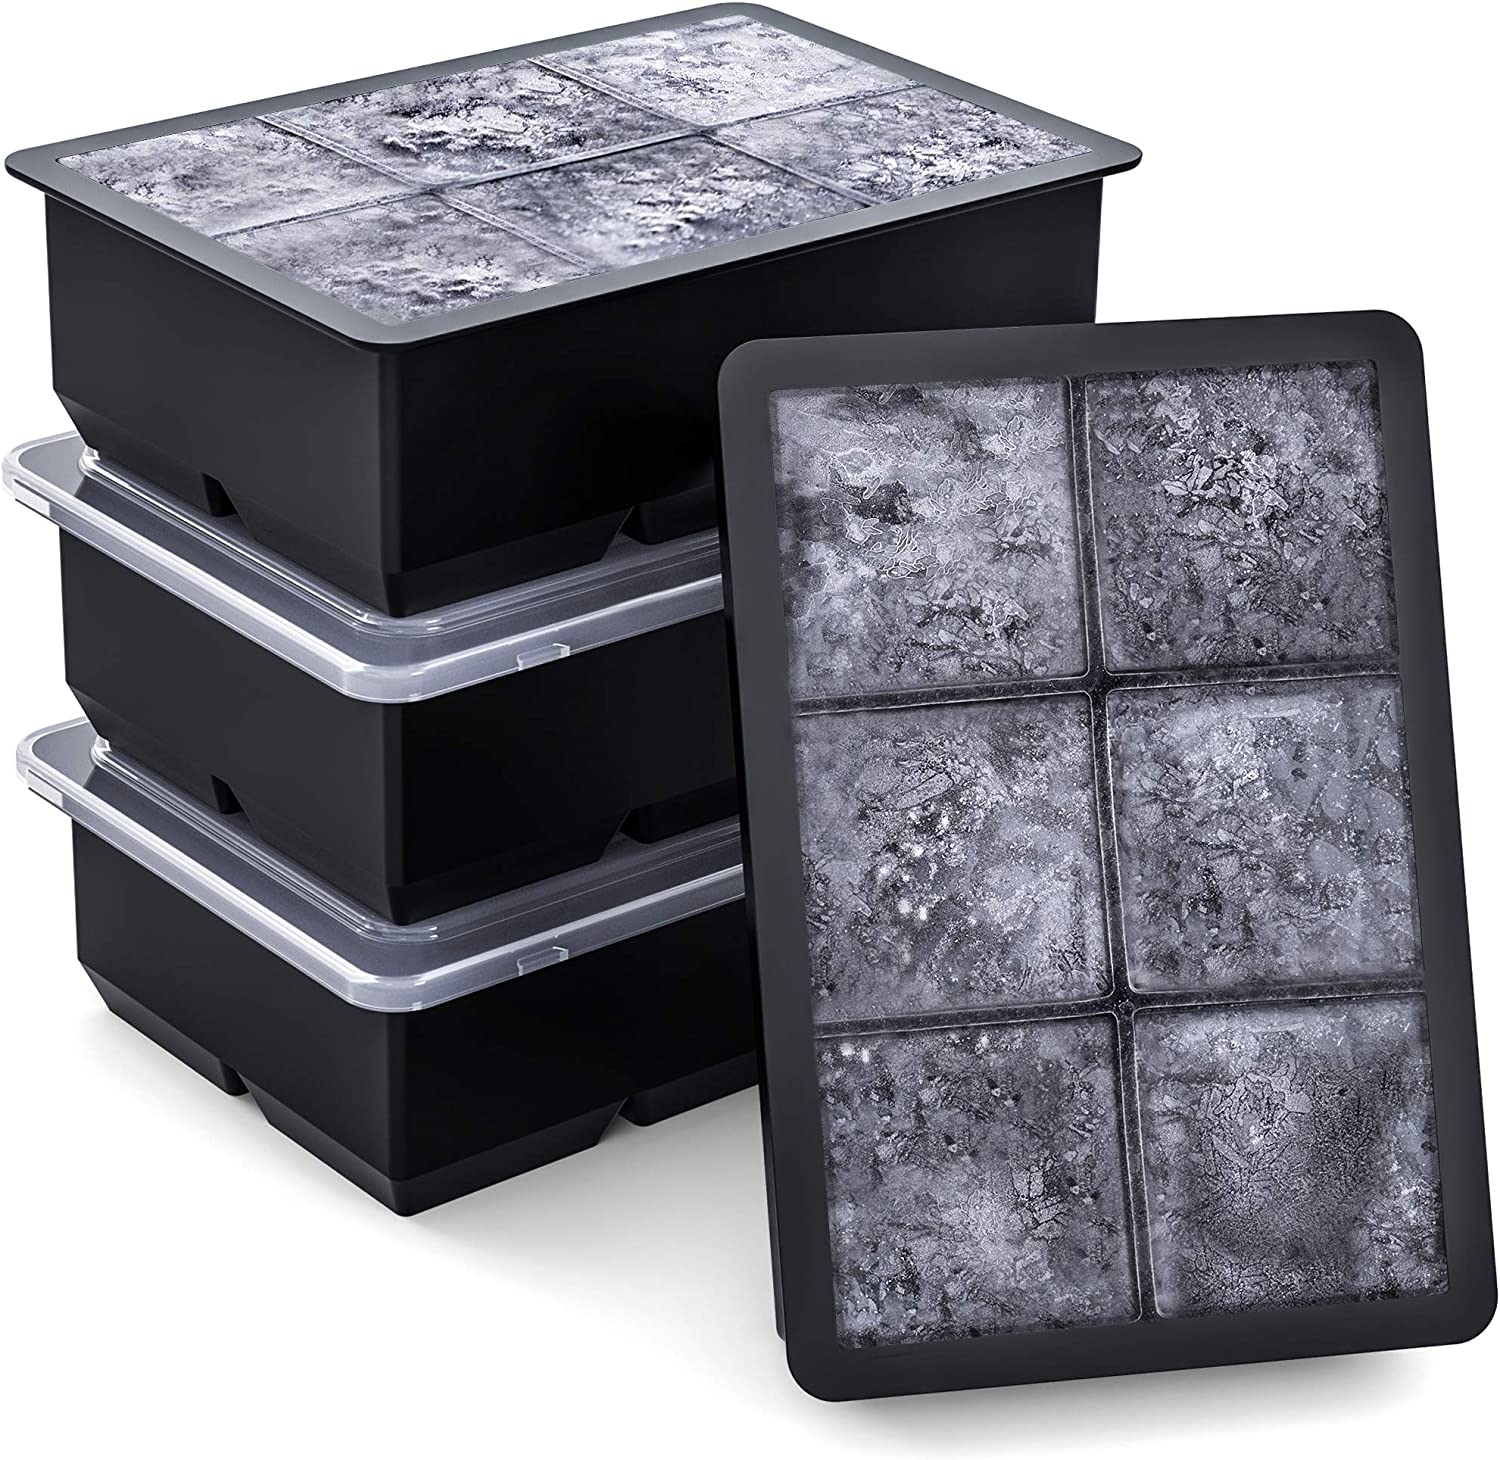 Syntus Ice Cube Trays Set of 4, Food Grade Silicone Ice Maker 6 Cavity Large Square Reusable Ice Cube Molds with removable lids for Chilling Whiskey Wine Cocktail Beverages Juice